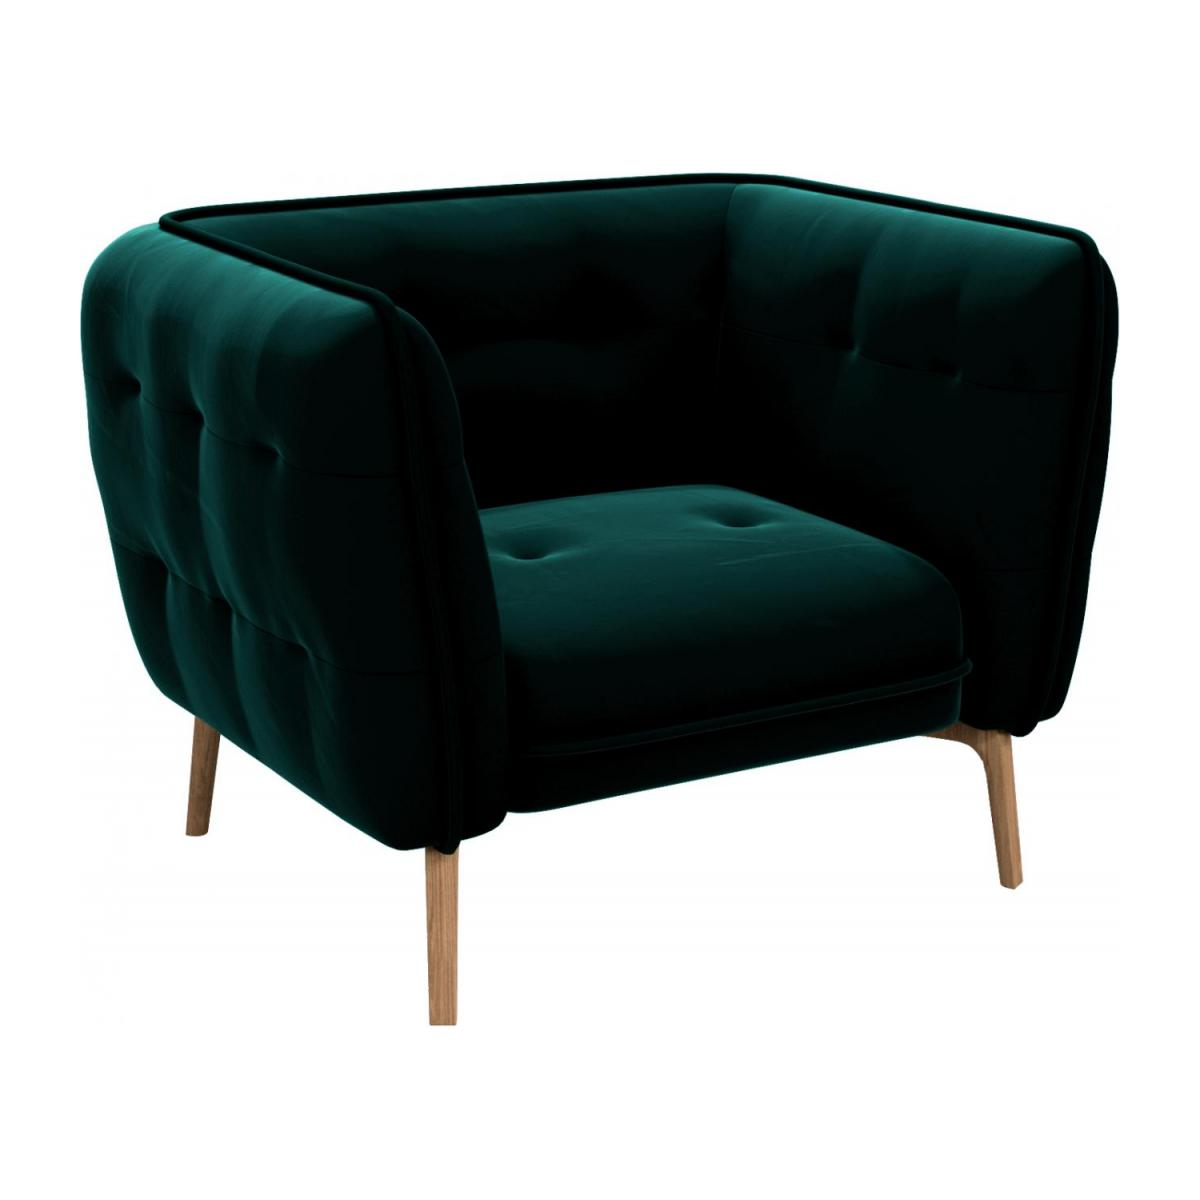 Armchair in Super Velvet fabric, petrol blue and natural oak feet n°1